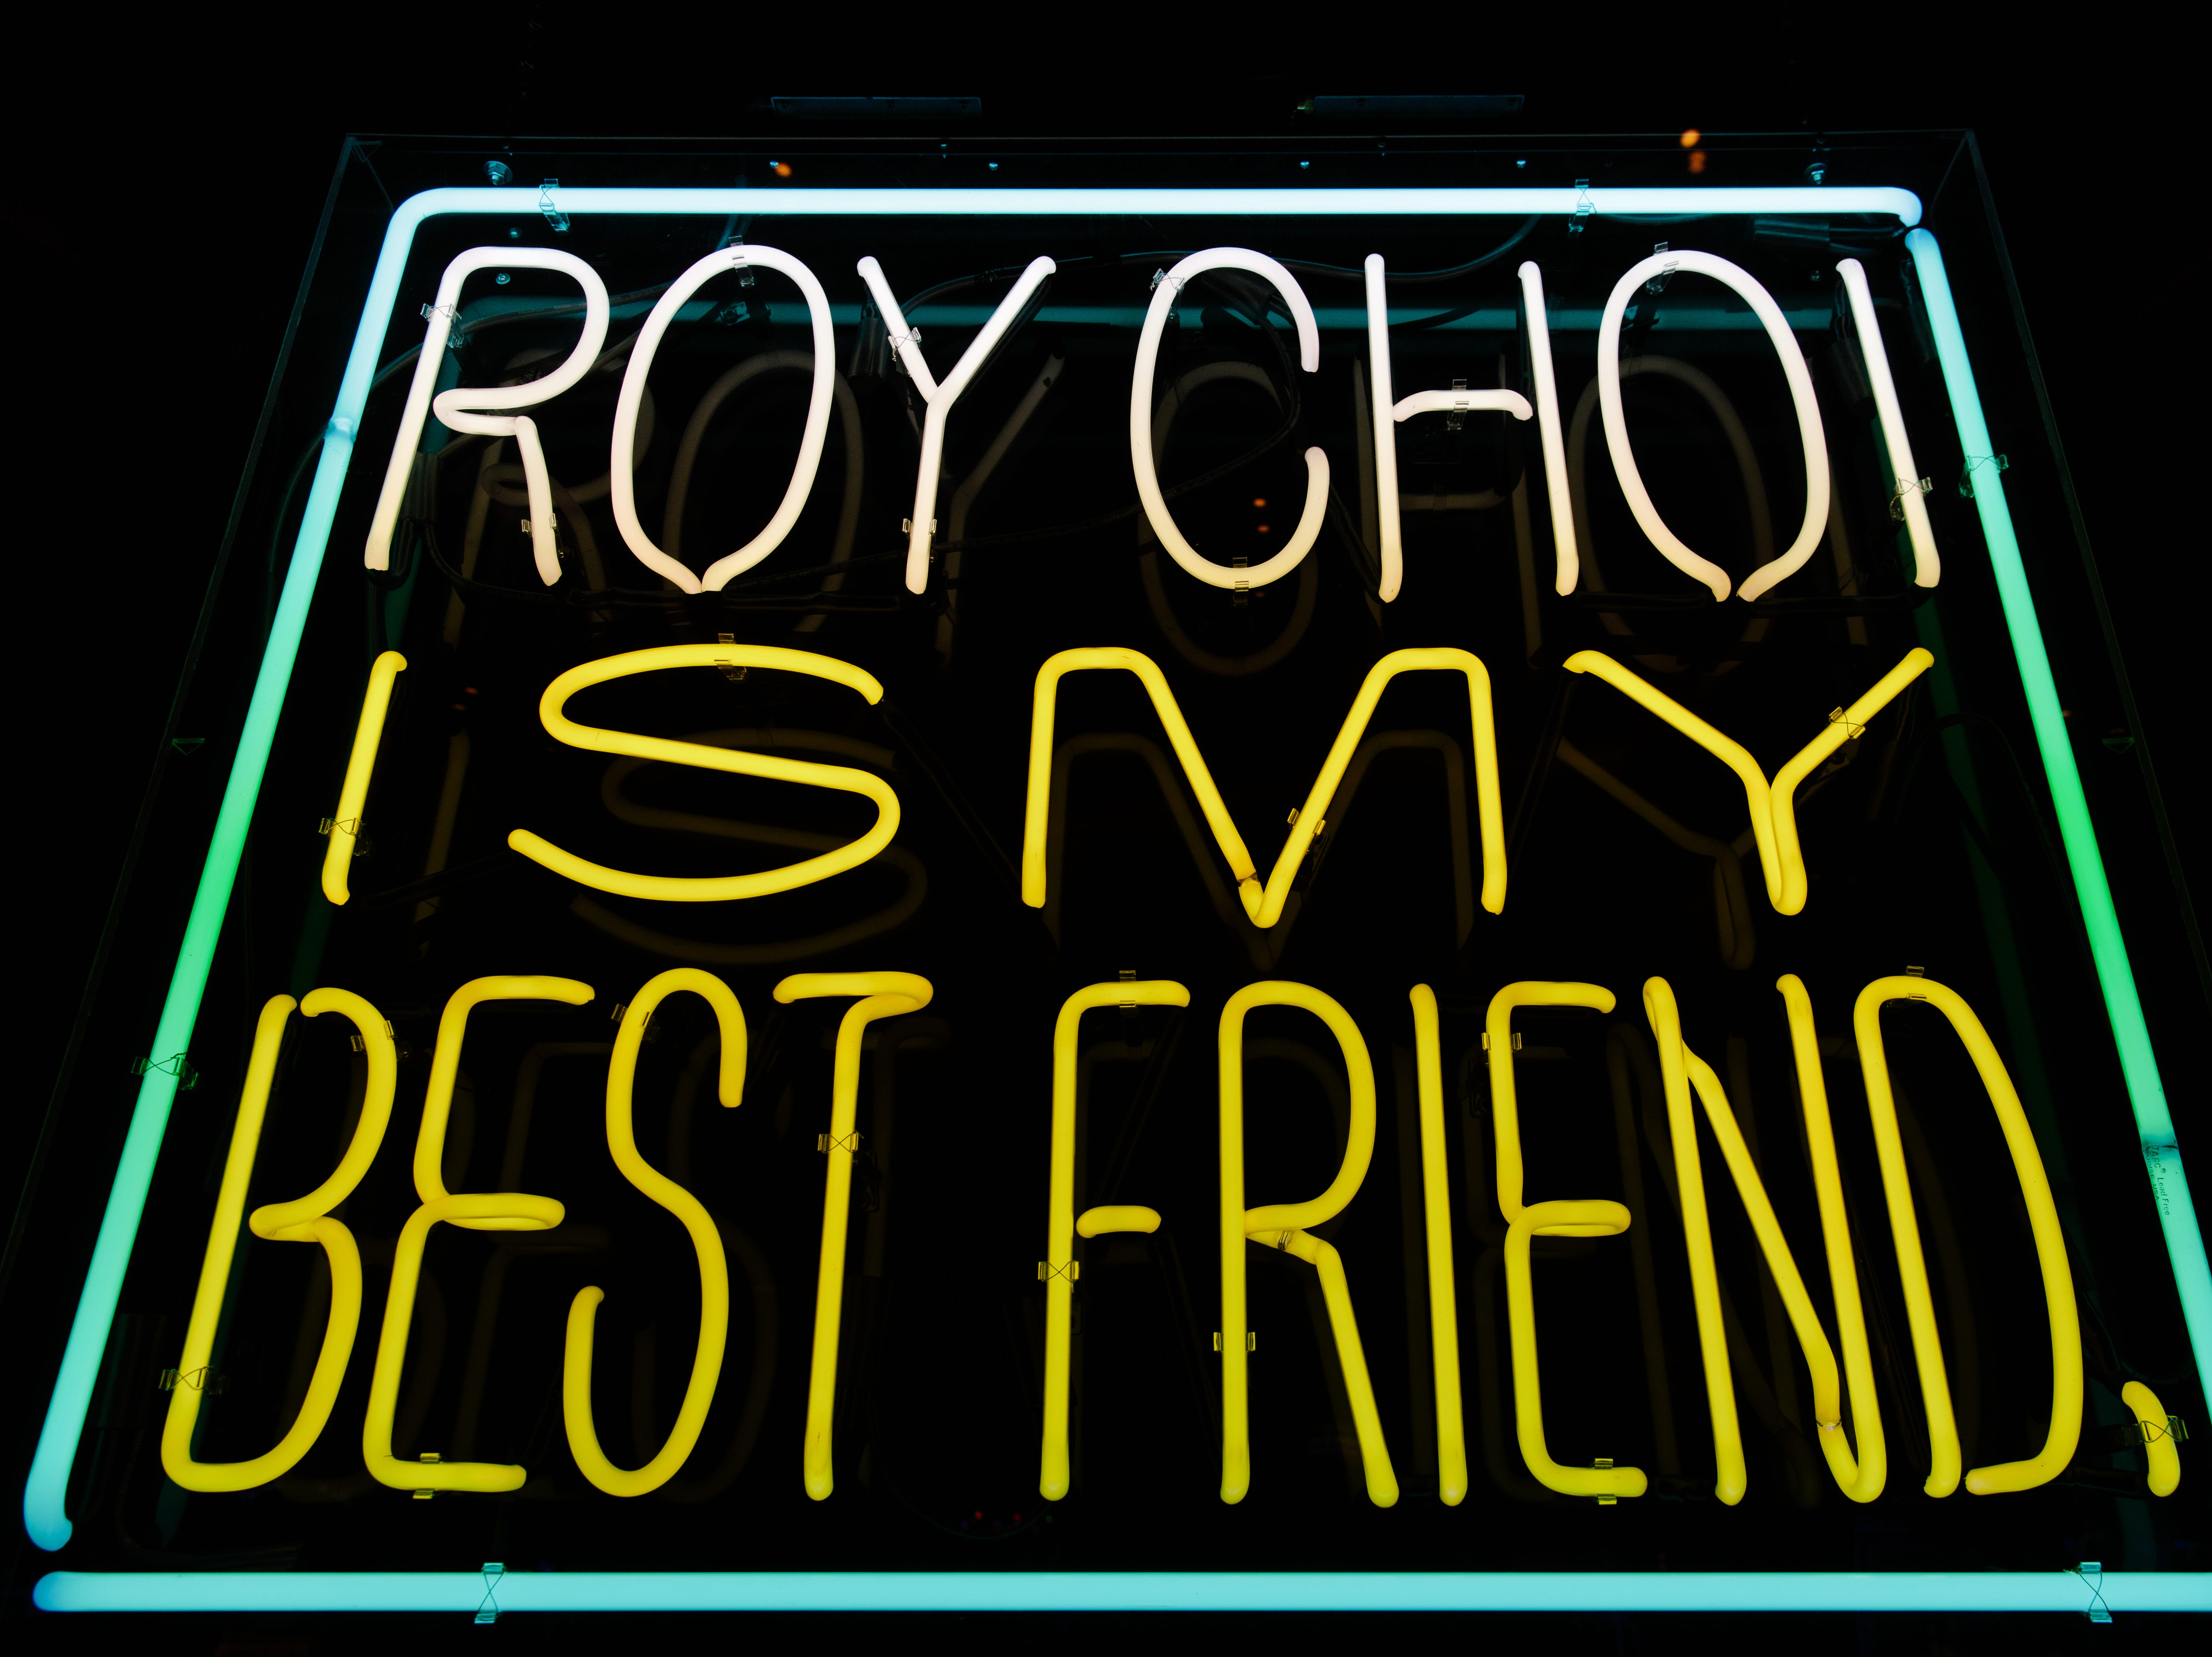 BEST FRIEND in the Park MGM. A neon shout-out to famed chef Roy Choi, who debuted the restaurant.